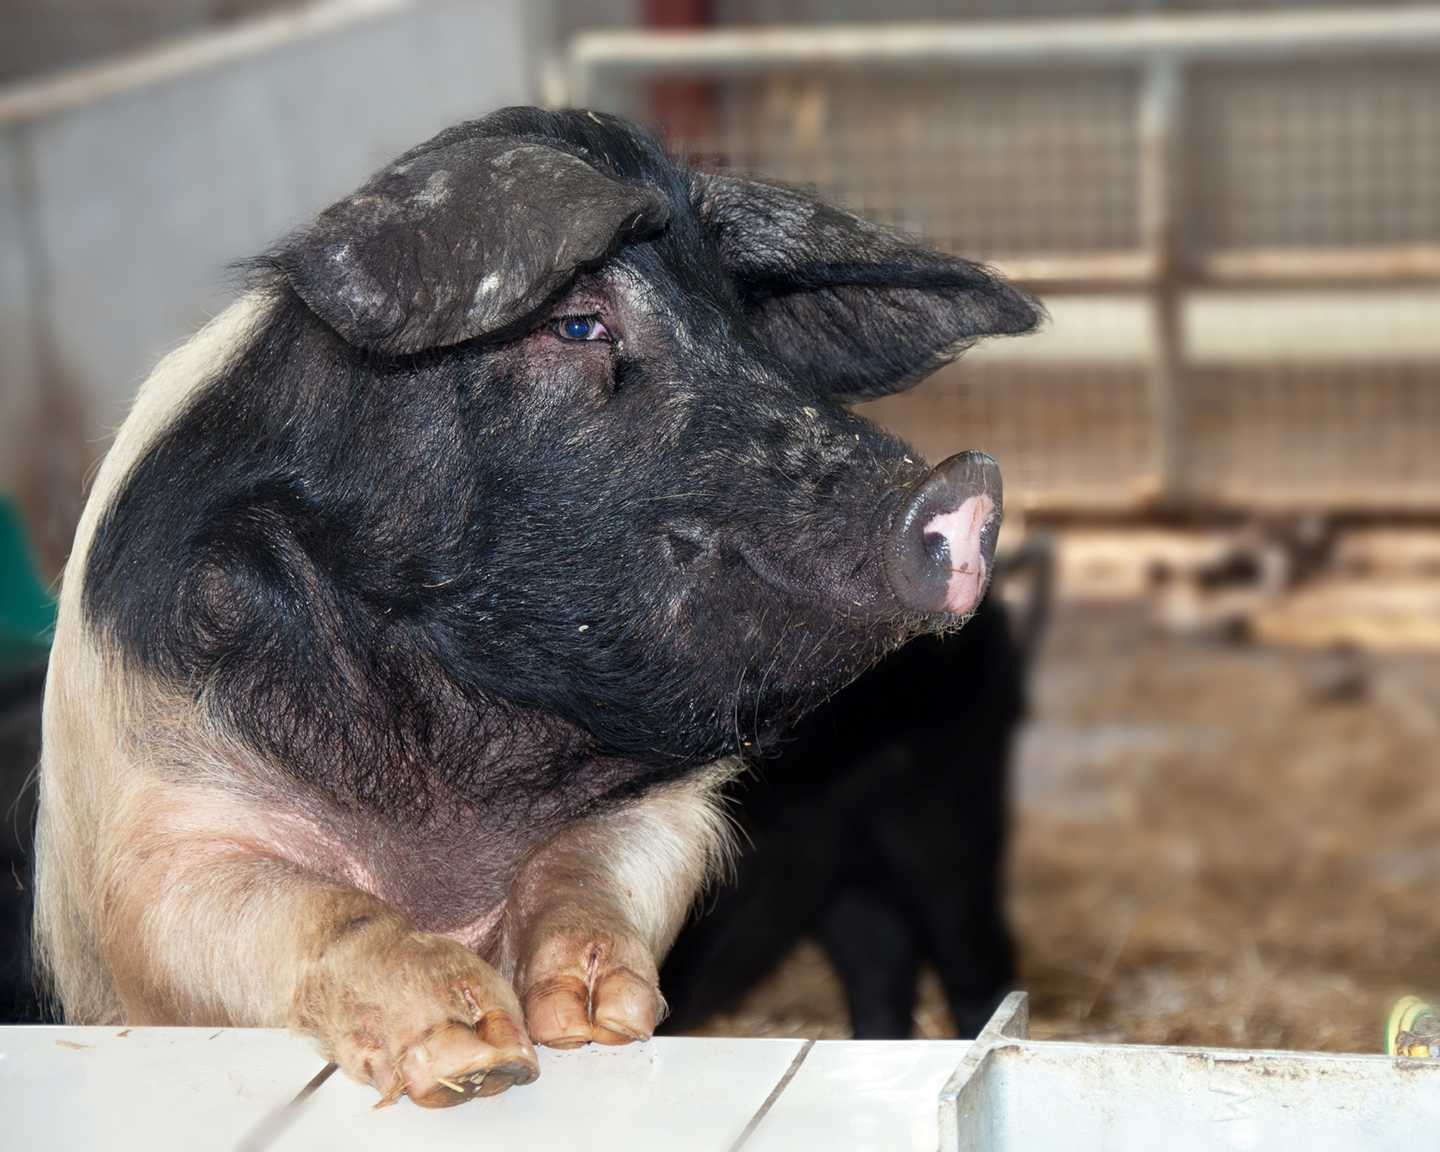 A black and pink pig looking away